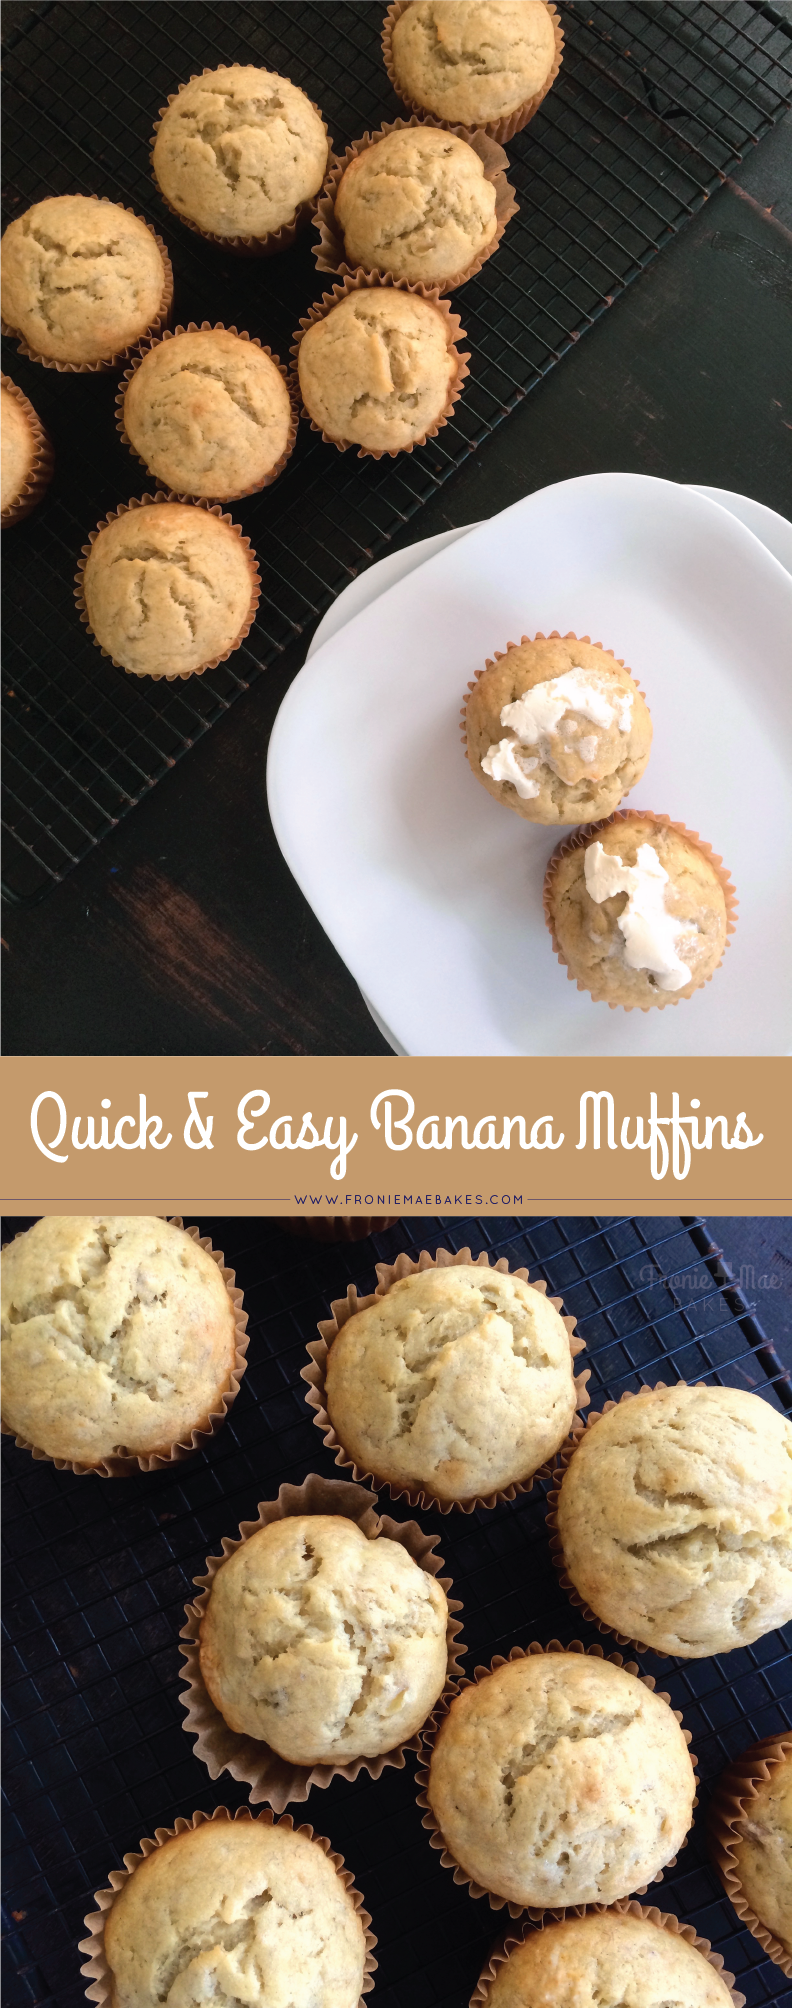 Quick and Easy Banana Muffins from Fronie Mae Bakes. www.froniemaebakes.com